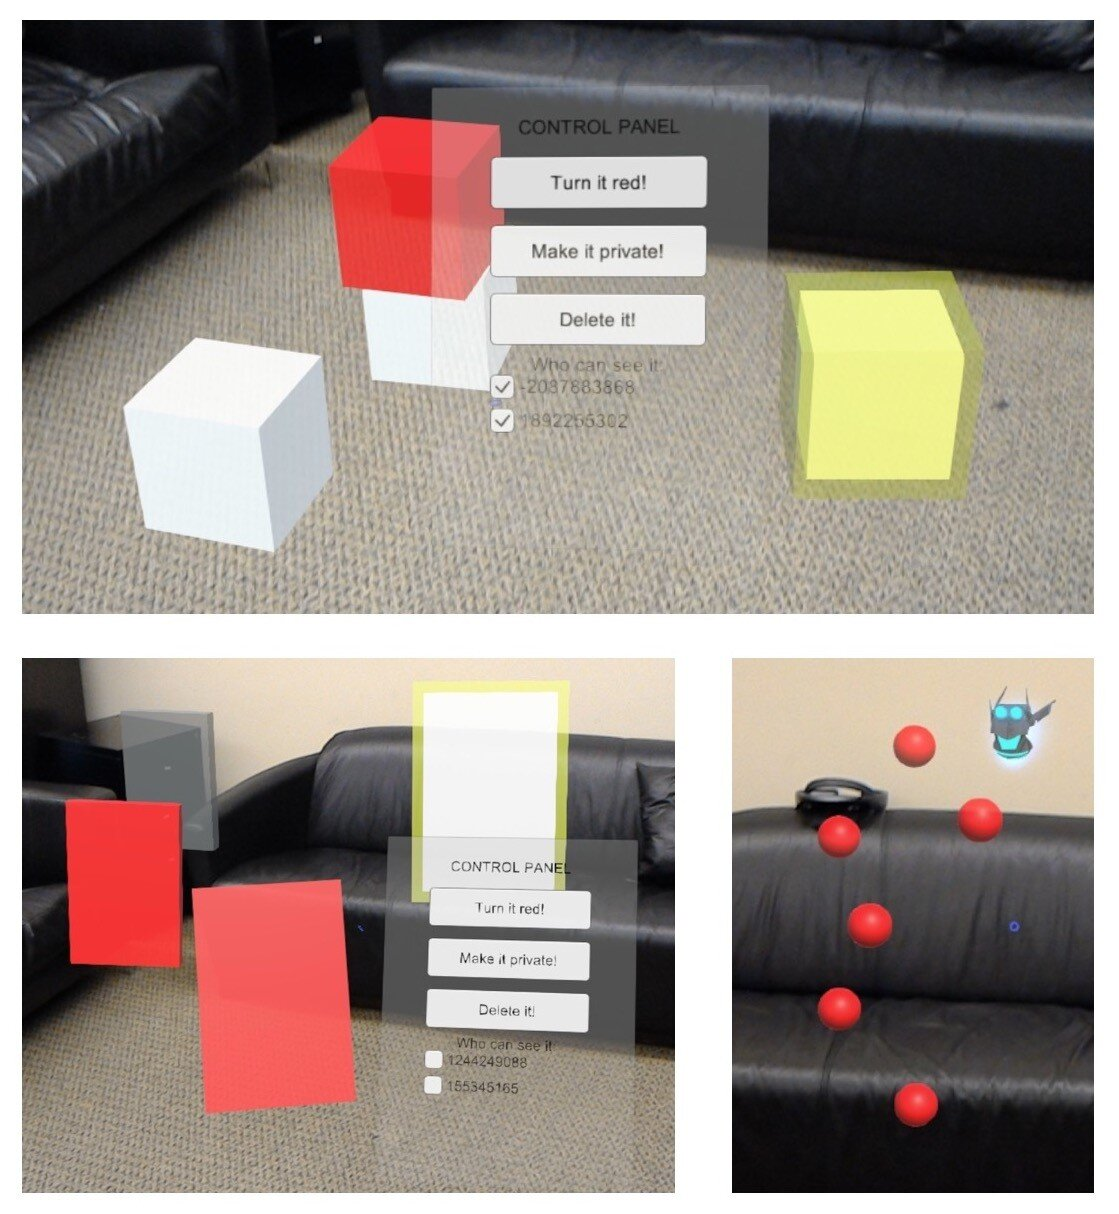 New tools to minimize risks in shared, augmented-reality